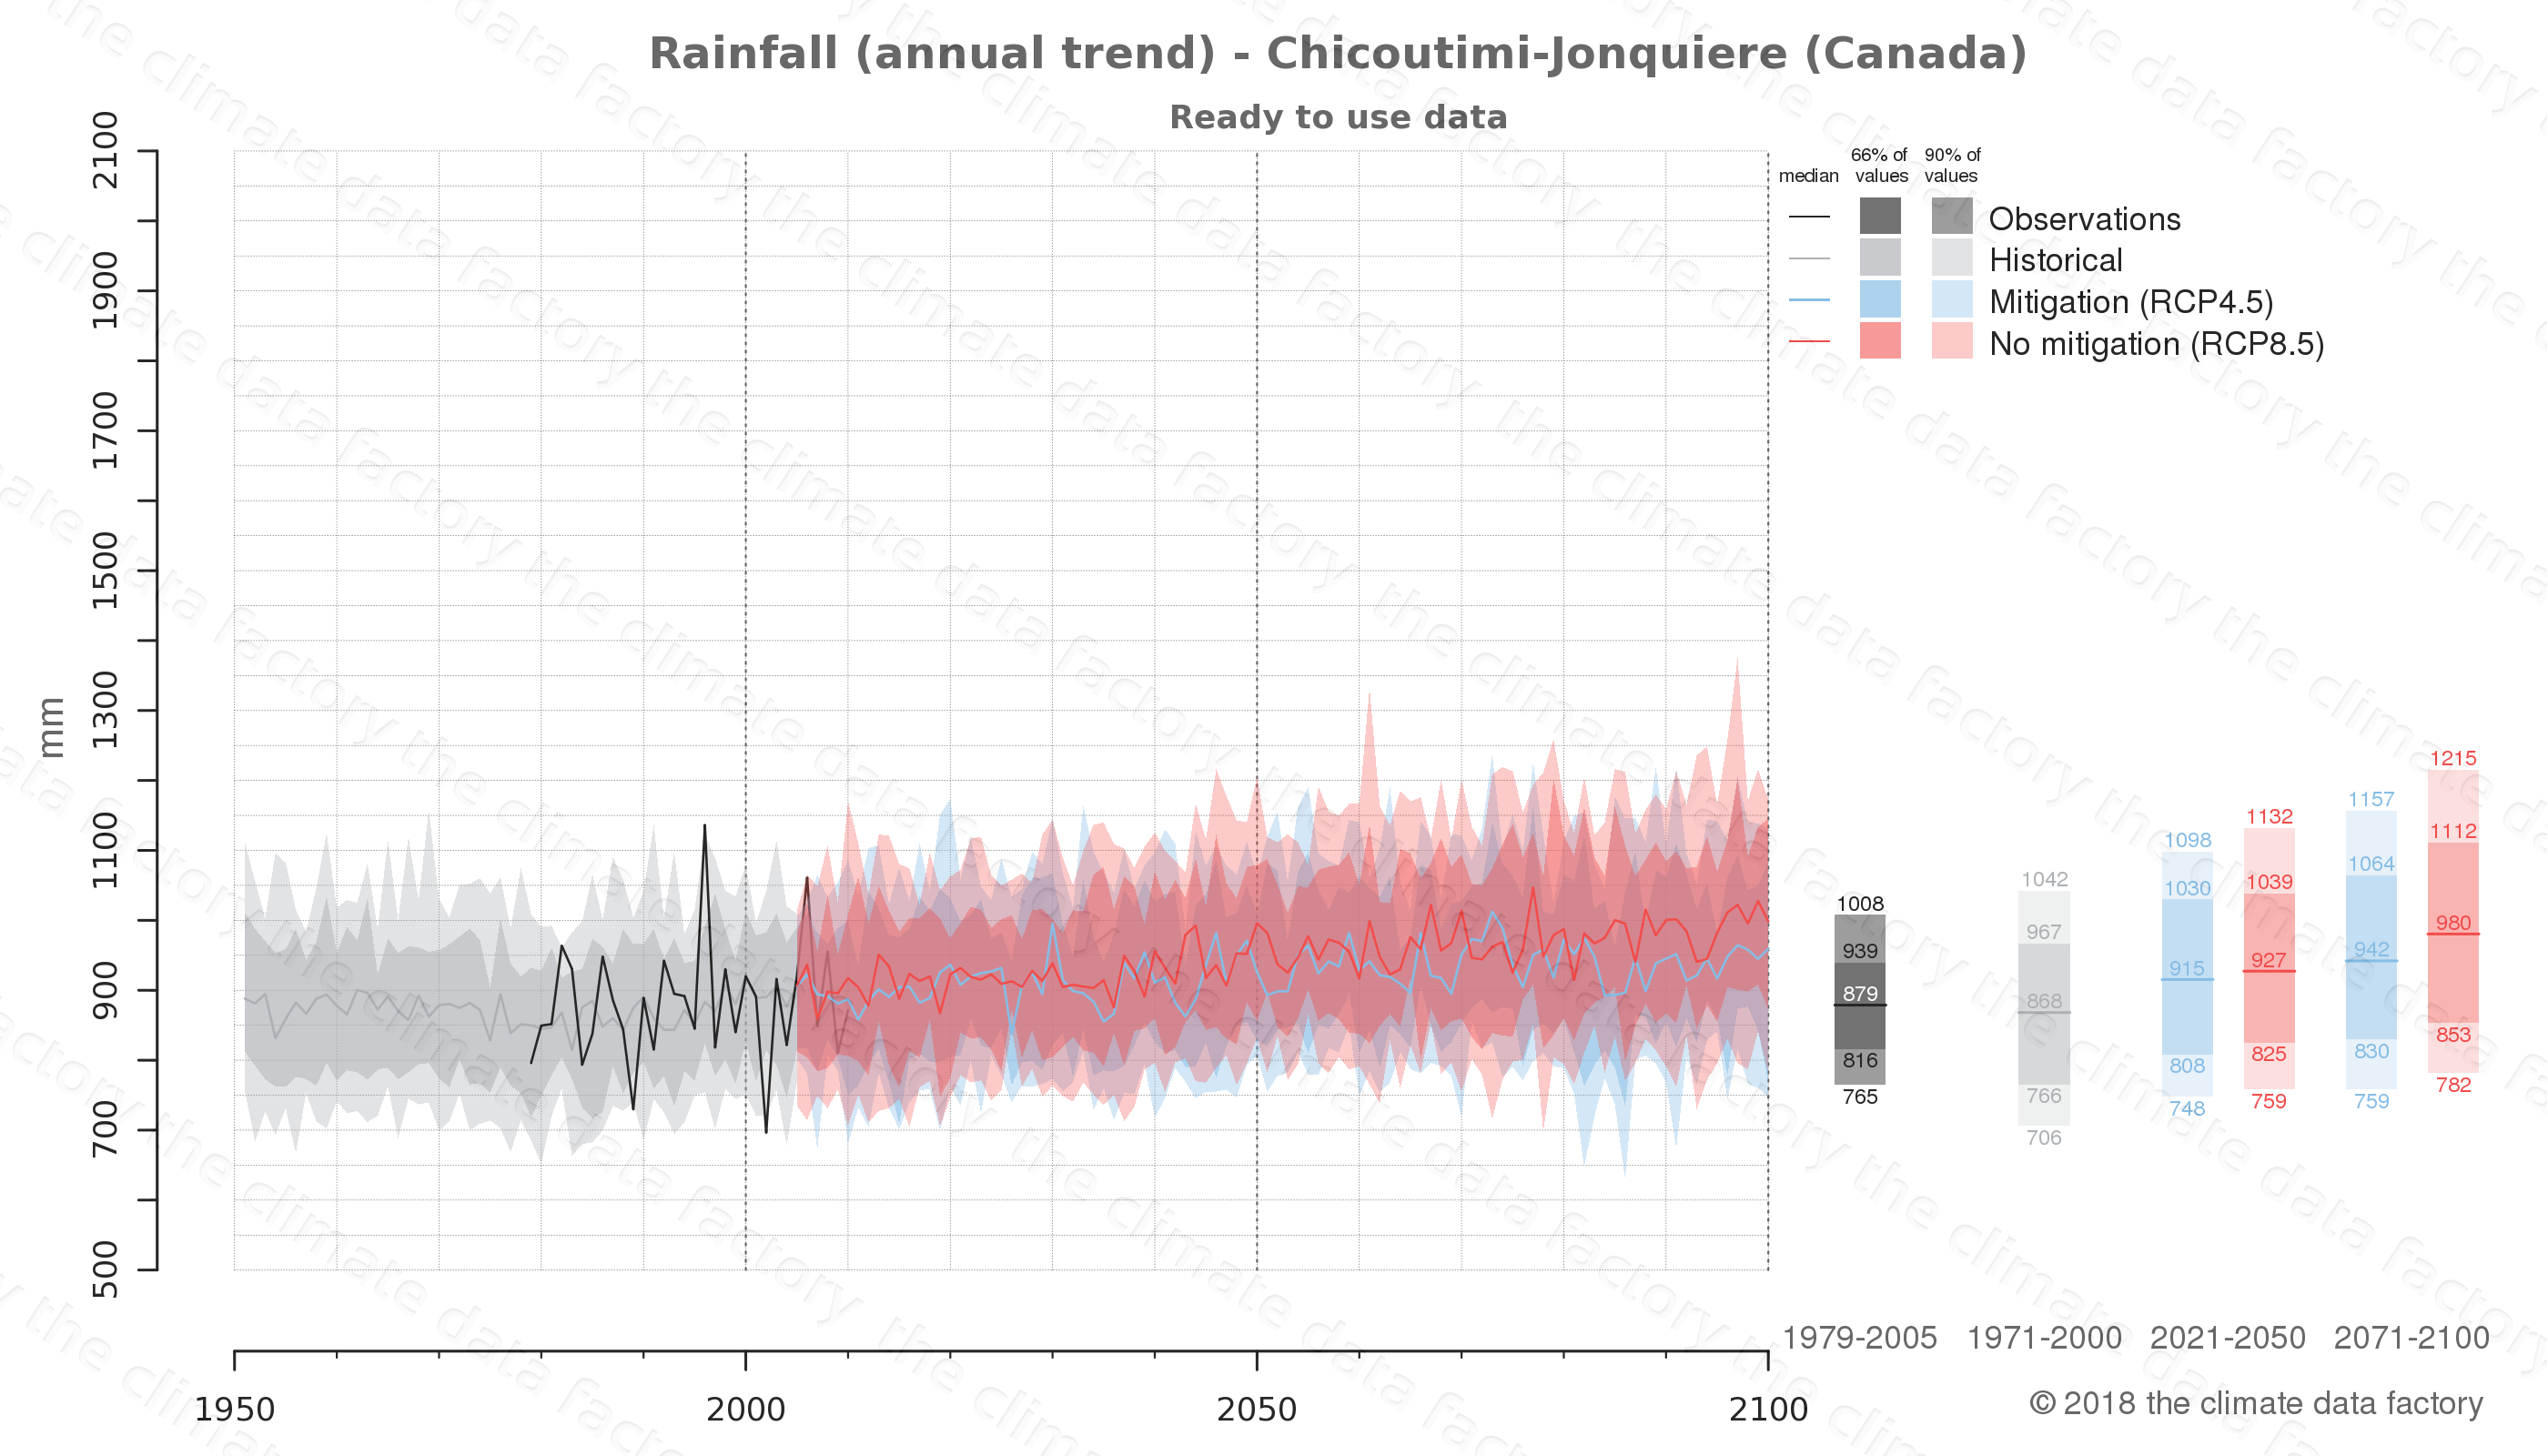 climate change data policy adaptation climate graph city data rainfall chicoutimi-jonquiere canada